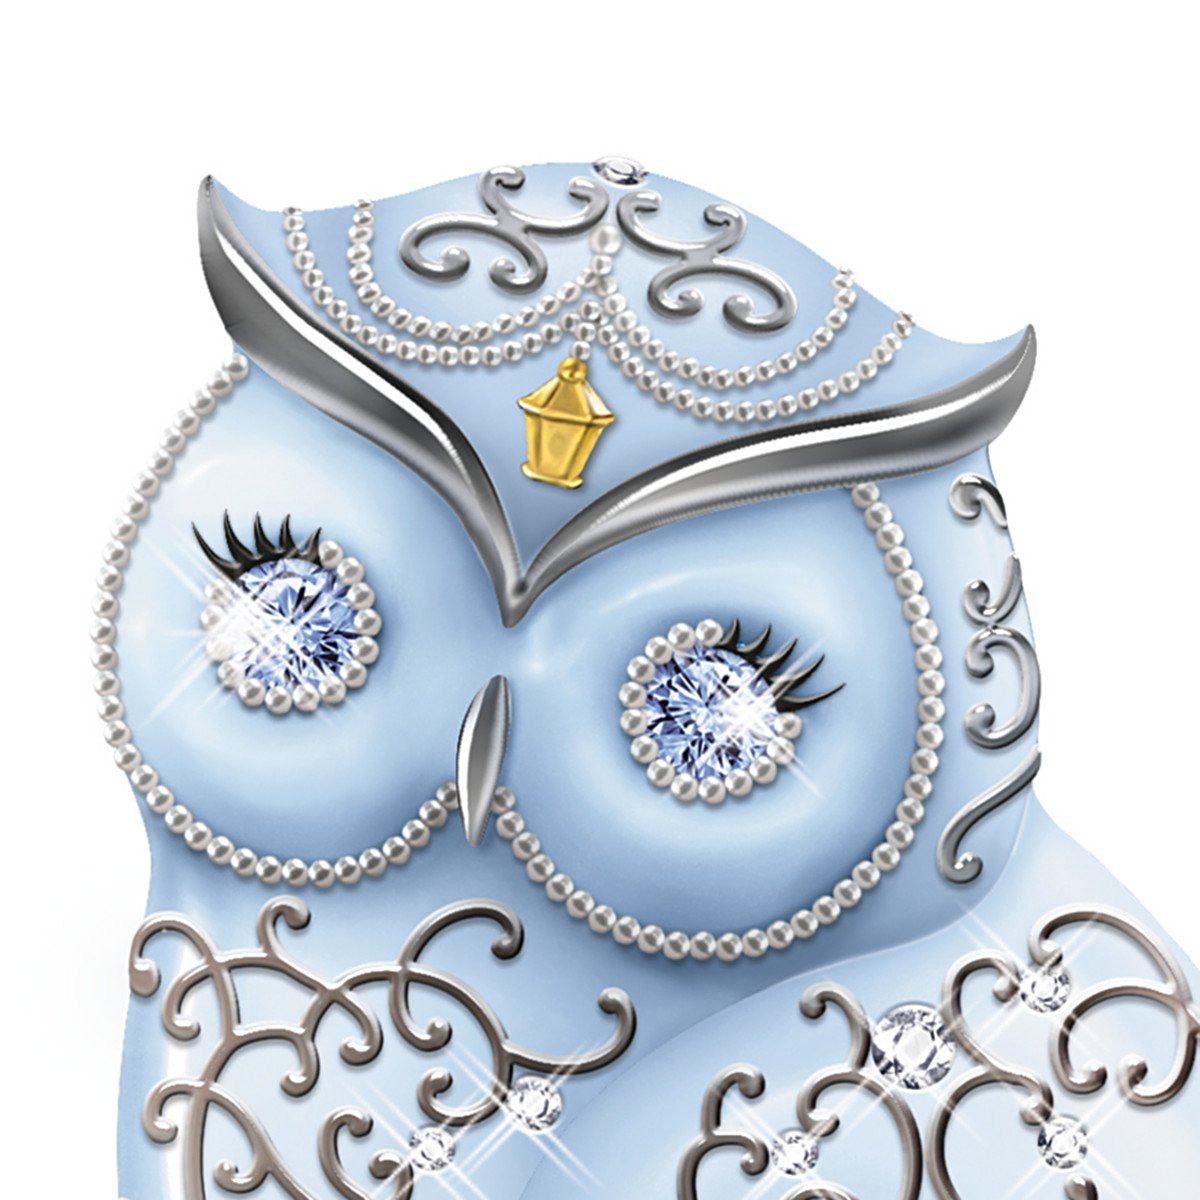 The Hamilton Collection Thomas Kinkade Collectible Owl Figurine with Swarovski Crystals Dazzling Wisdom